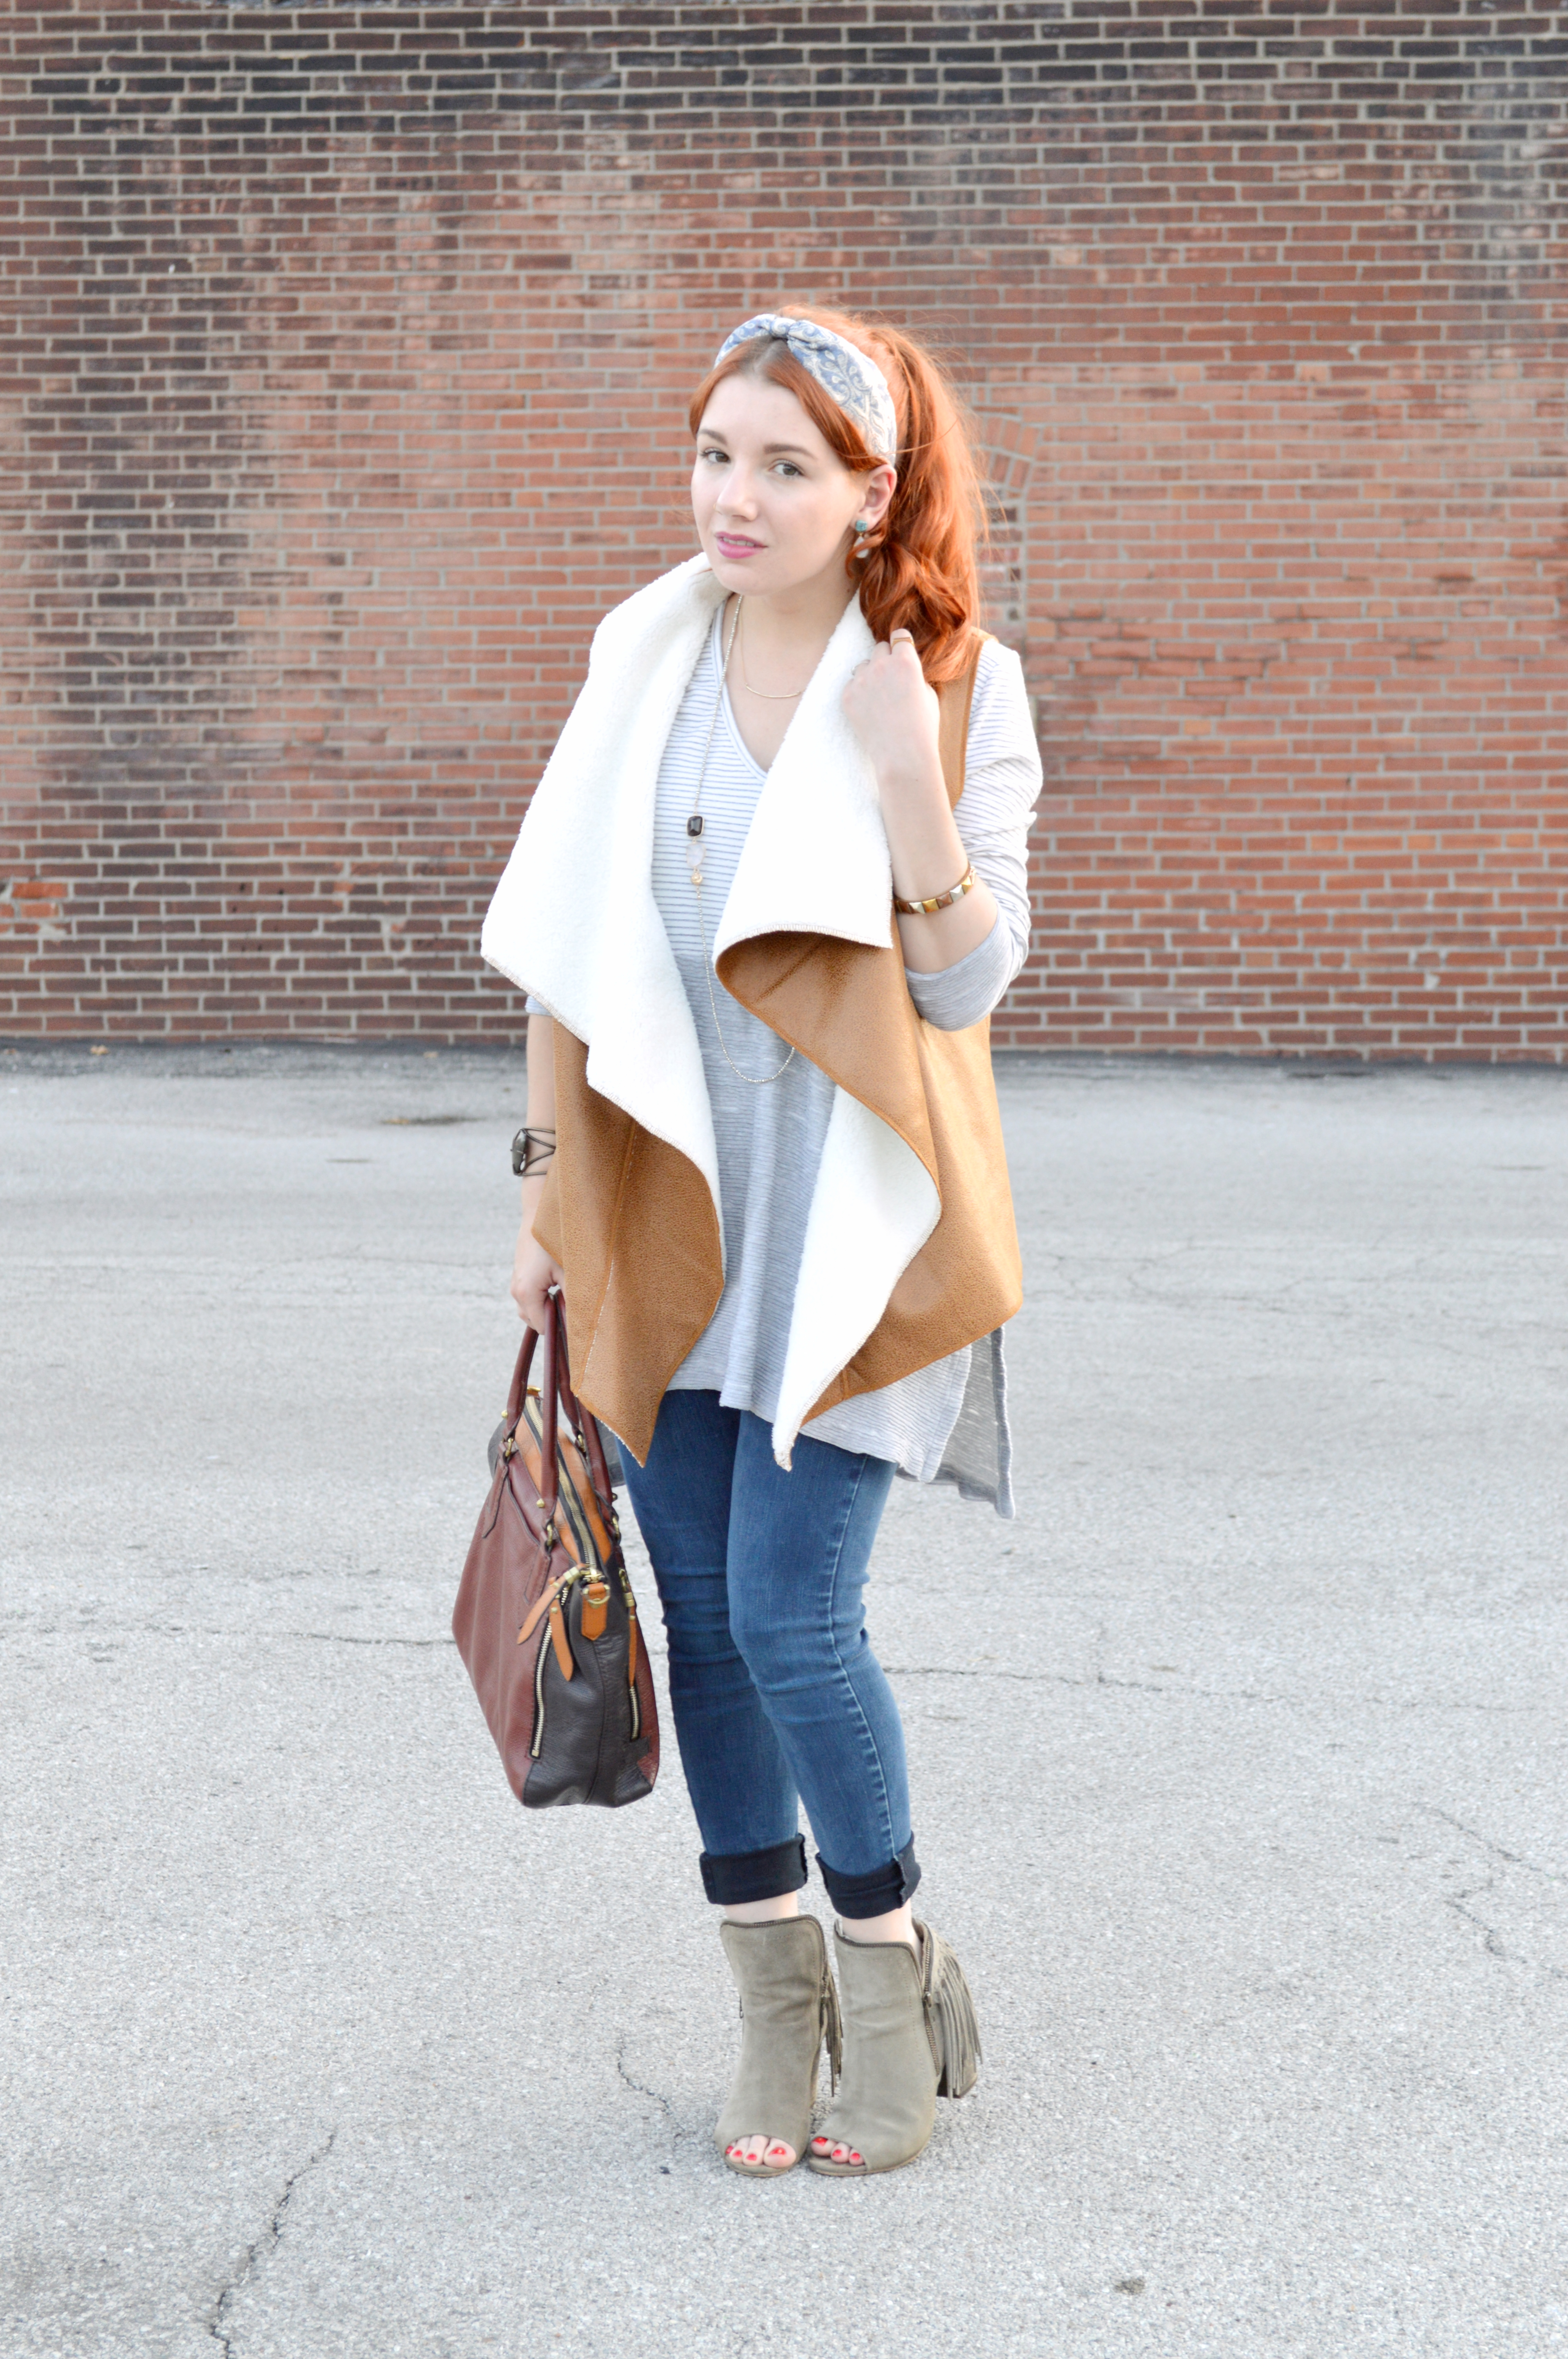 Fall Preview - Tobi Faux Shearling Vest - Outfit by Oh Julia Ann (2)